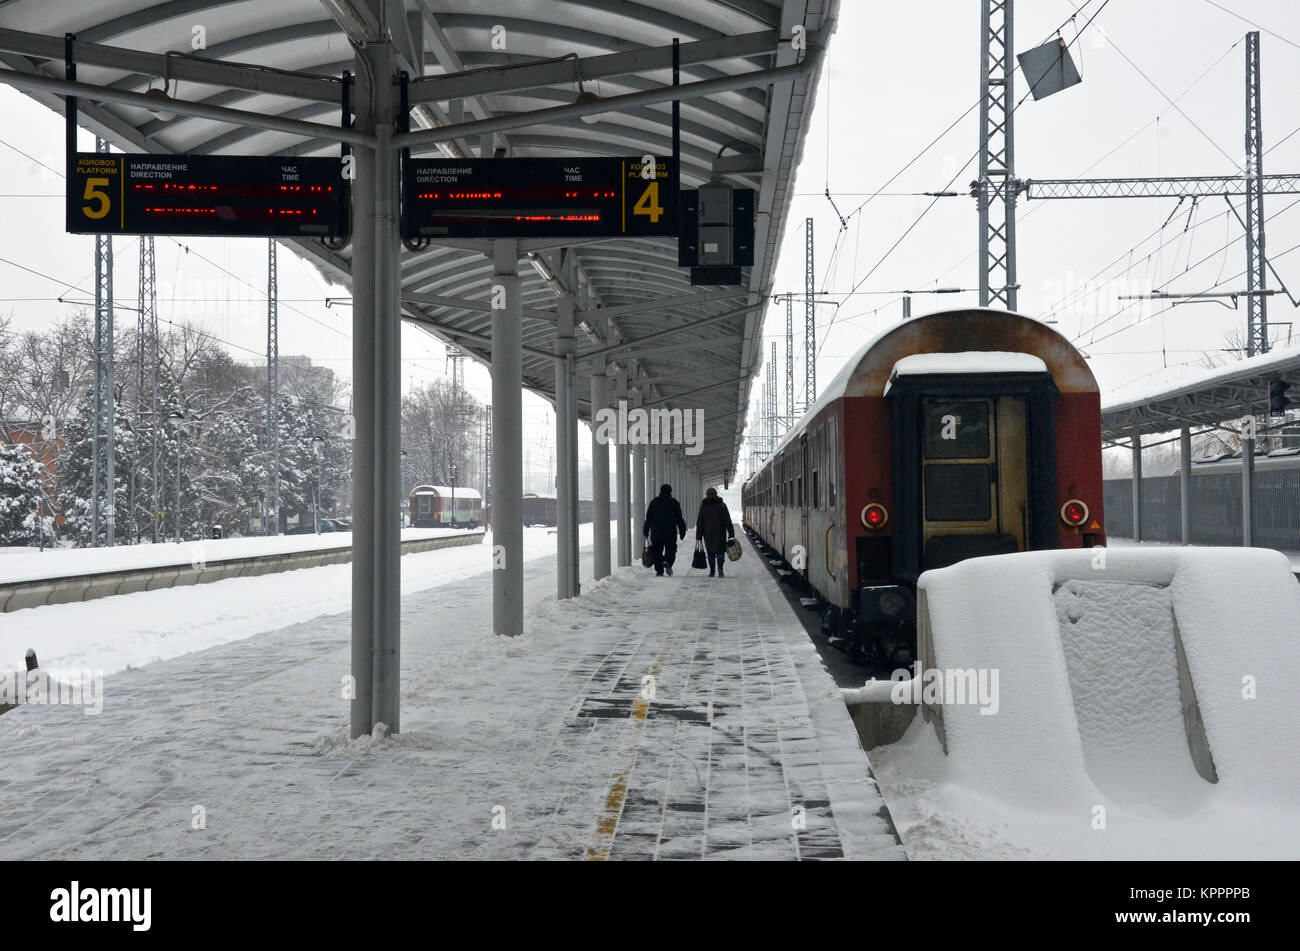 A train on the platform at Vidin railway station, north-western Bulgaria, near Romania, eastern Europe - Stock Image